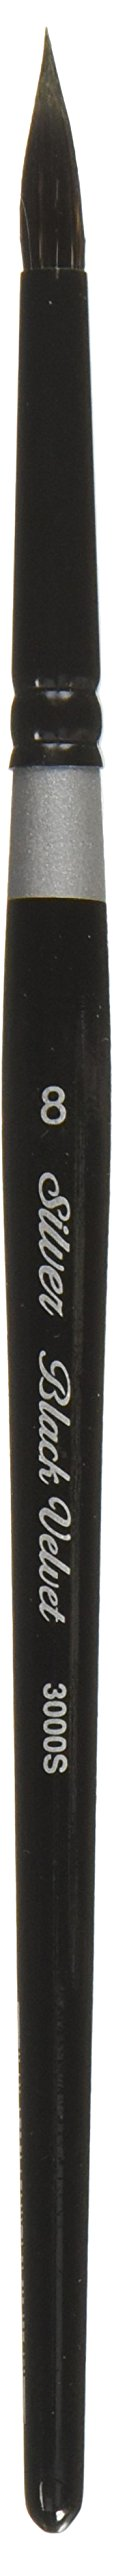 Silver Brush 3000S-8 Black Velvet Short Handle Blend Squirrel and Risslon Brush, Round, Size 8